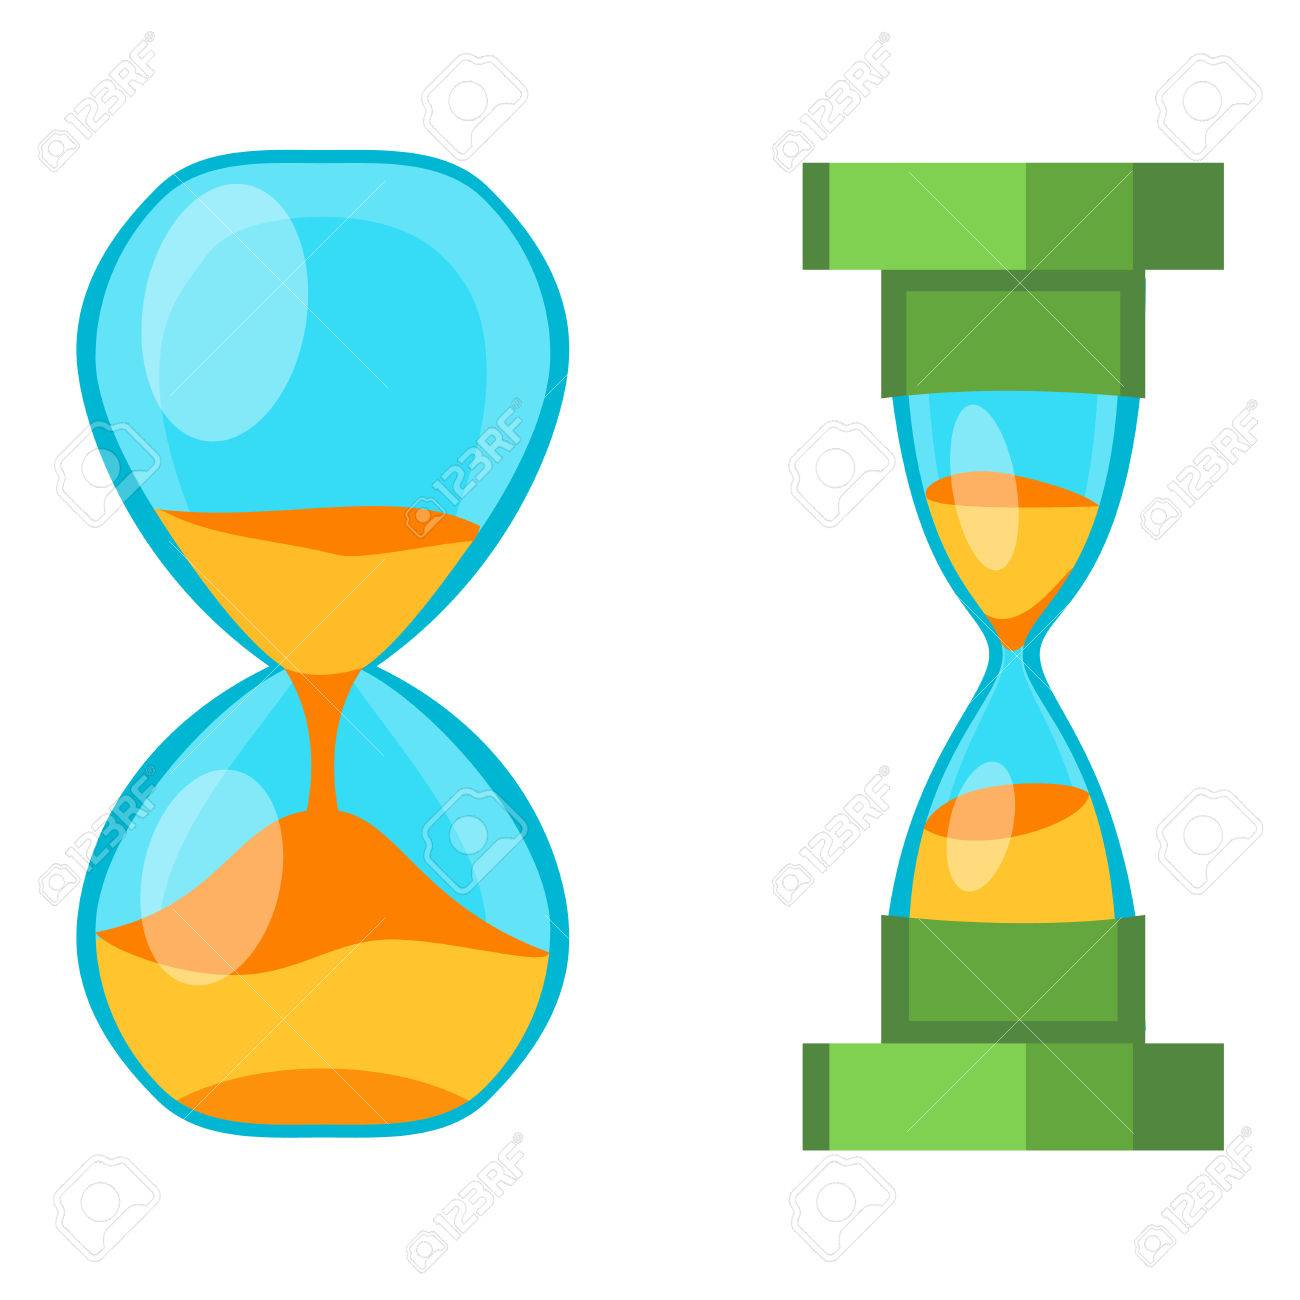 Sandglass icon  Sandglass Icon, Time Hourglass, Sand Clock Flat Design History ...